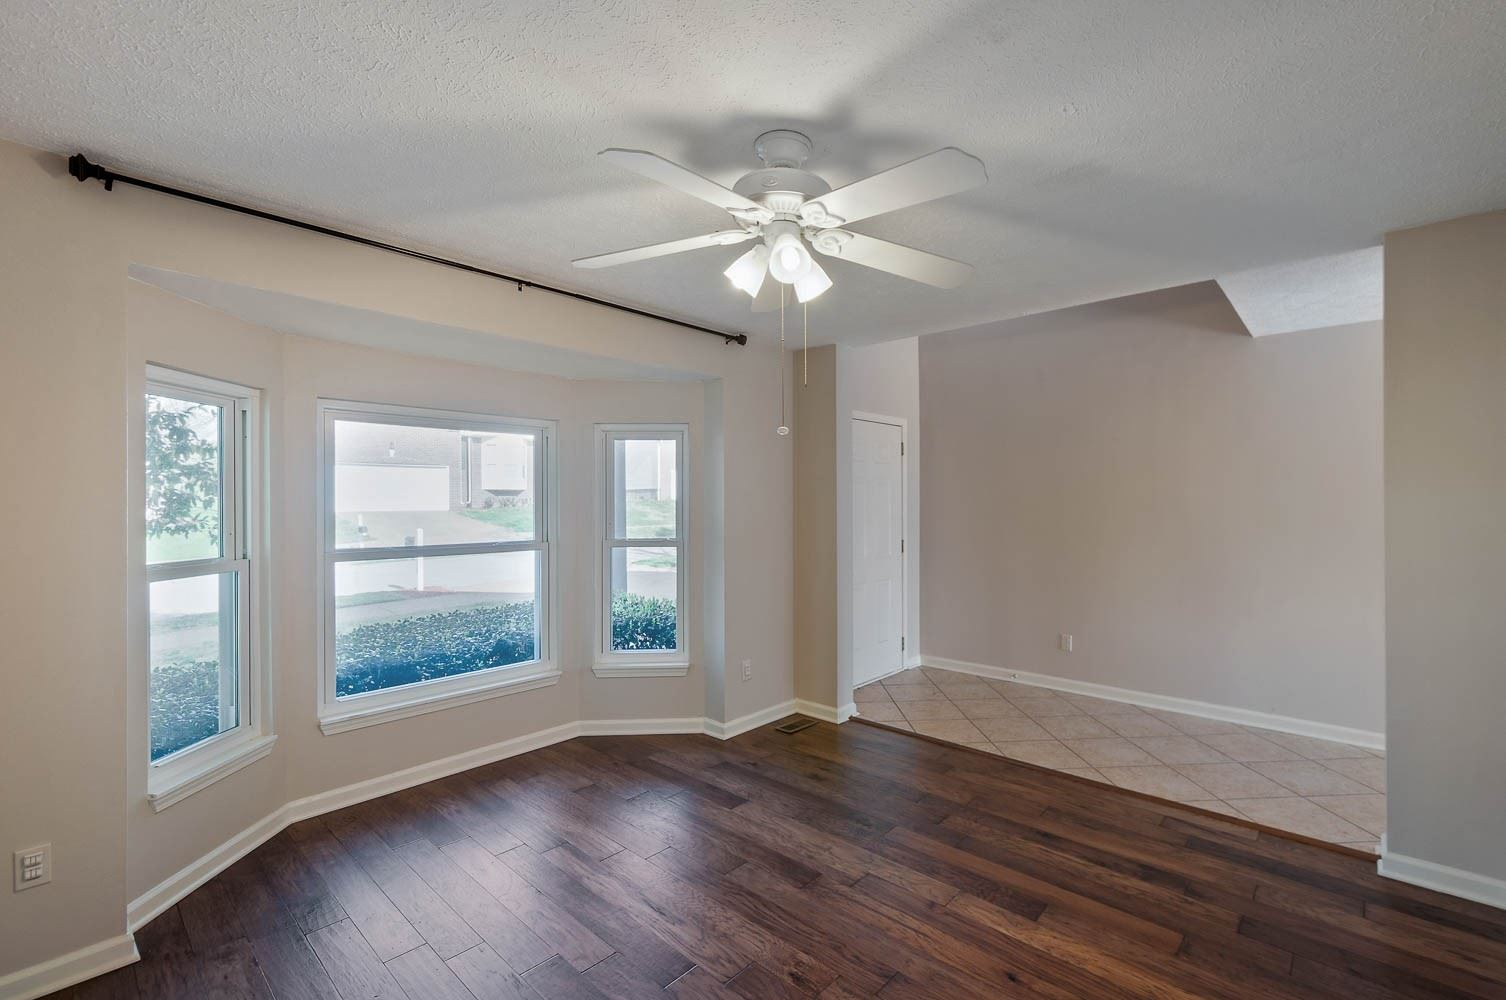 Photo of 2129 Melody Dr, Franklin, TN 37067 (MLS # 2242980)